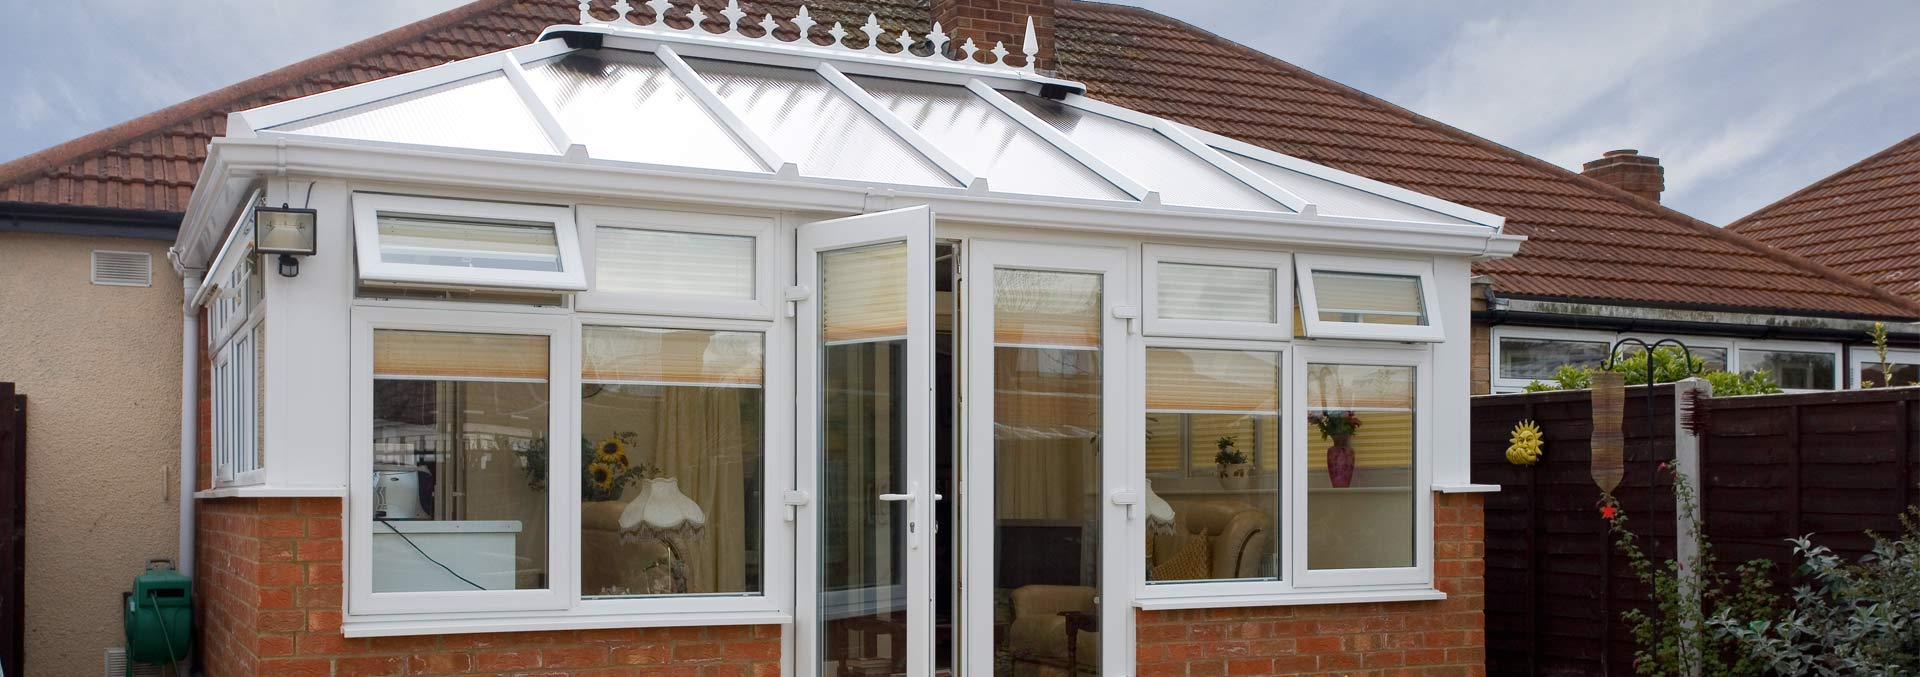 Edwardian conservatory in white